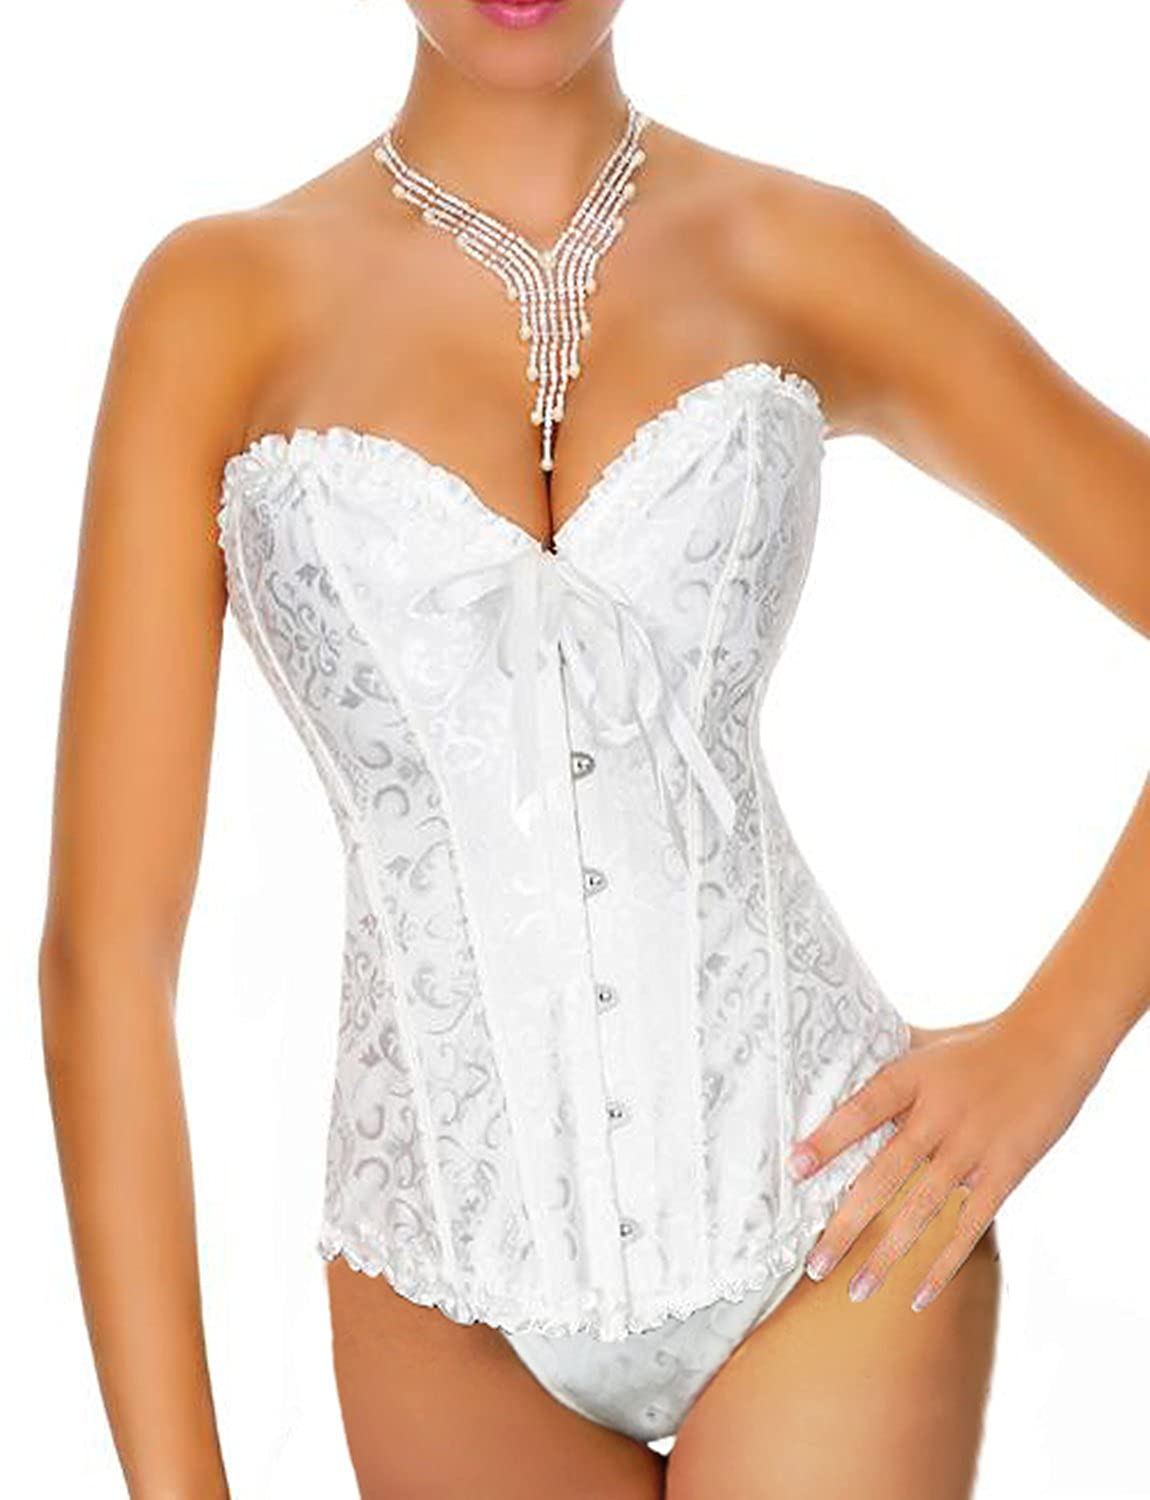 d9542a477f8bf Yummy Bee Womens Corset Set Bridal Bustier Ivory White Push Up Plus Size  2-20 at Amazon Women s Clothing store